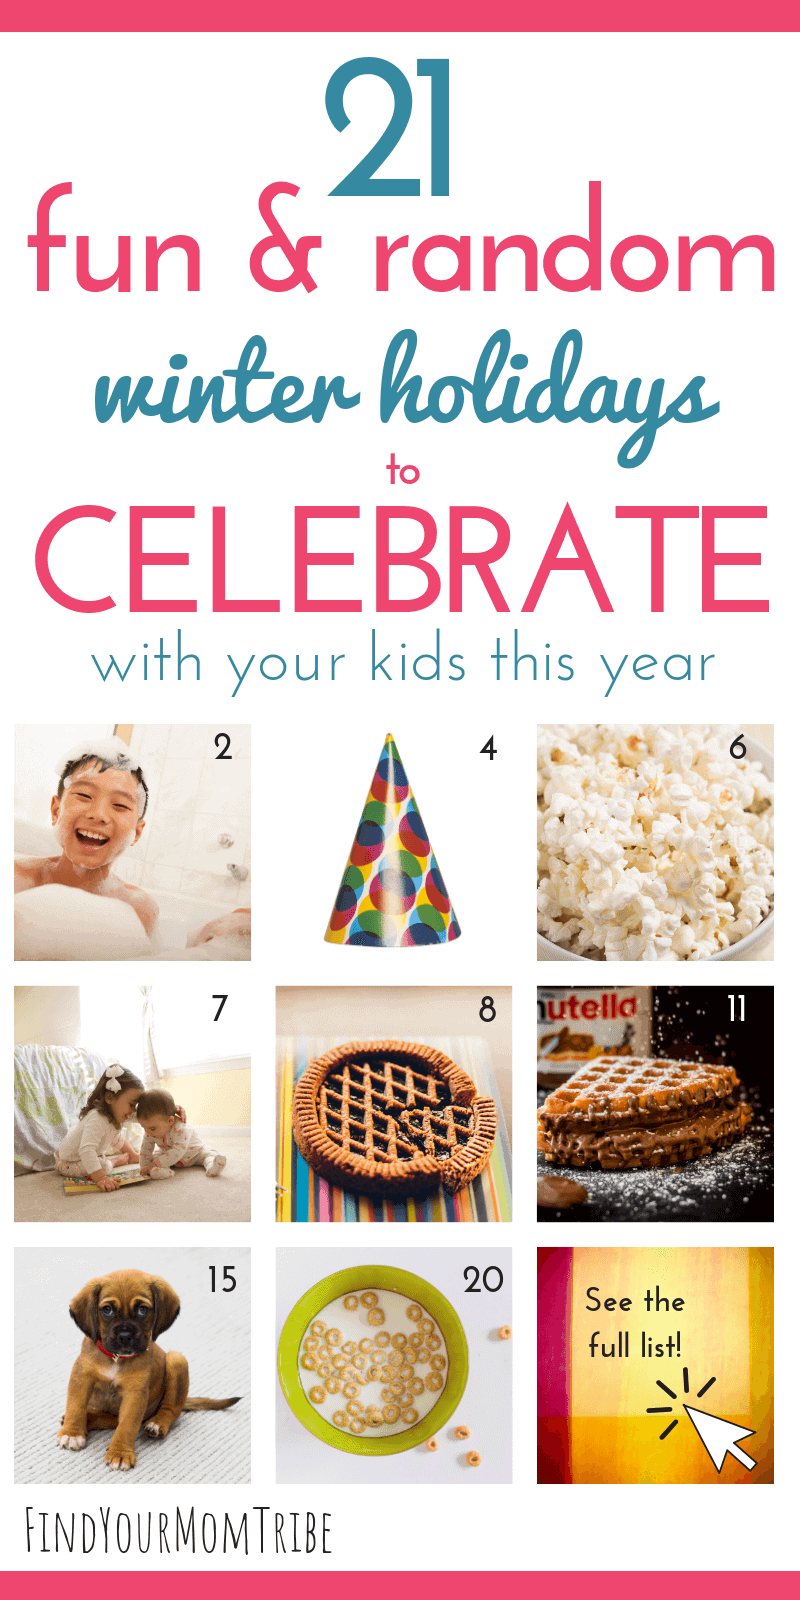 random holidays to celebrate with your kids